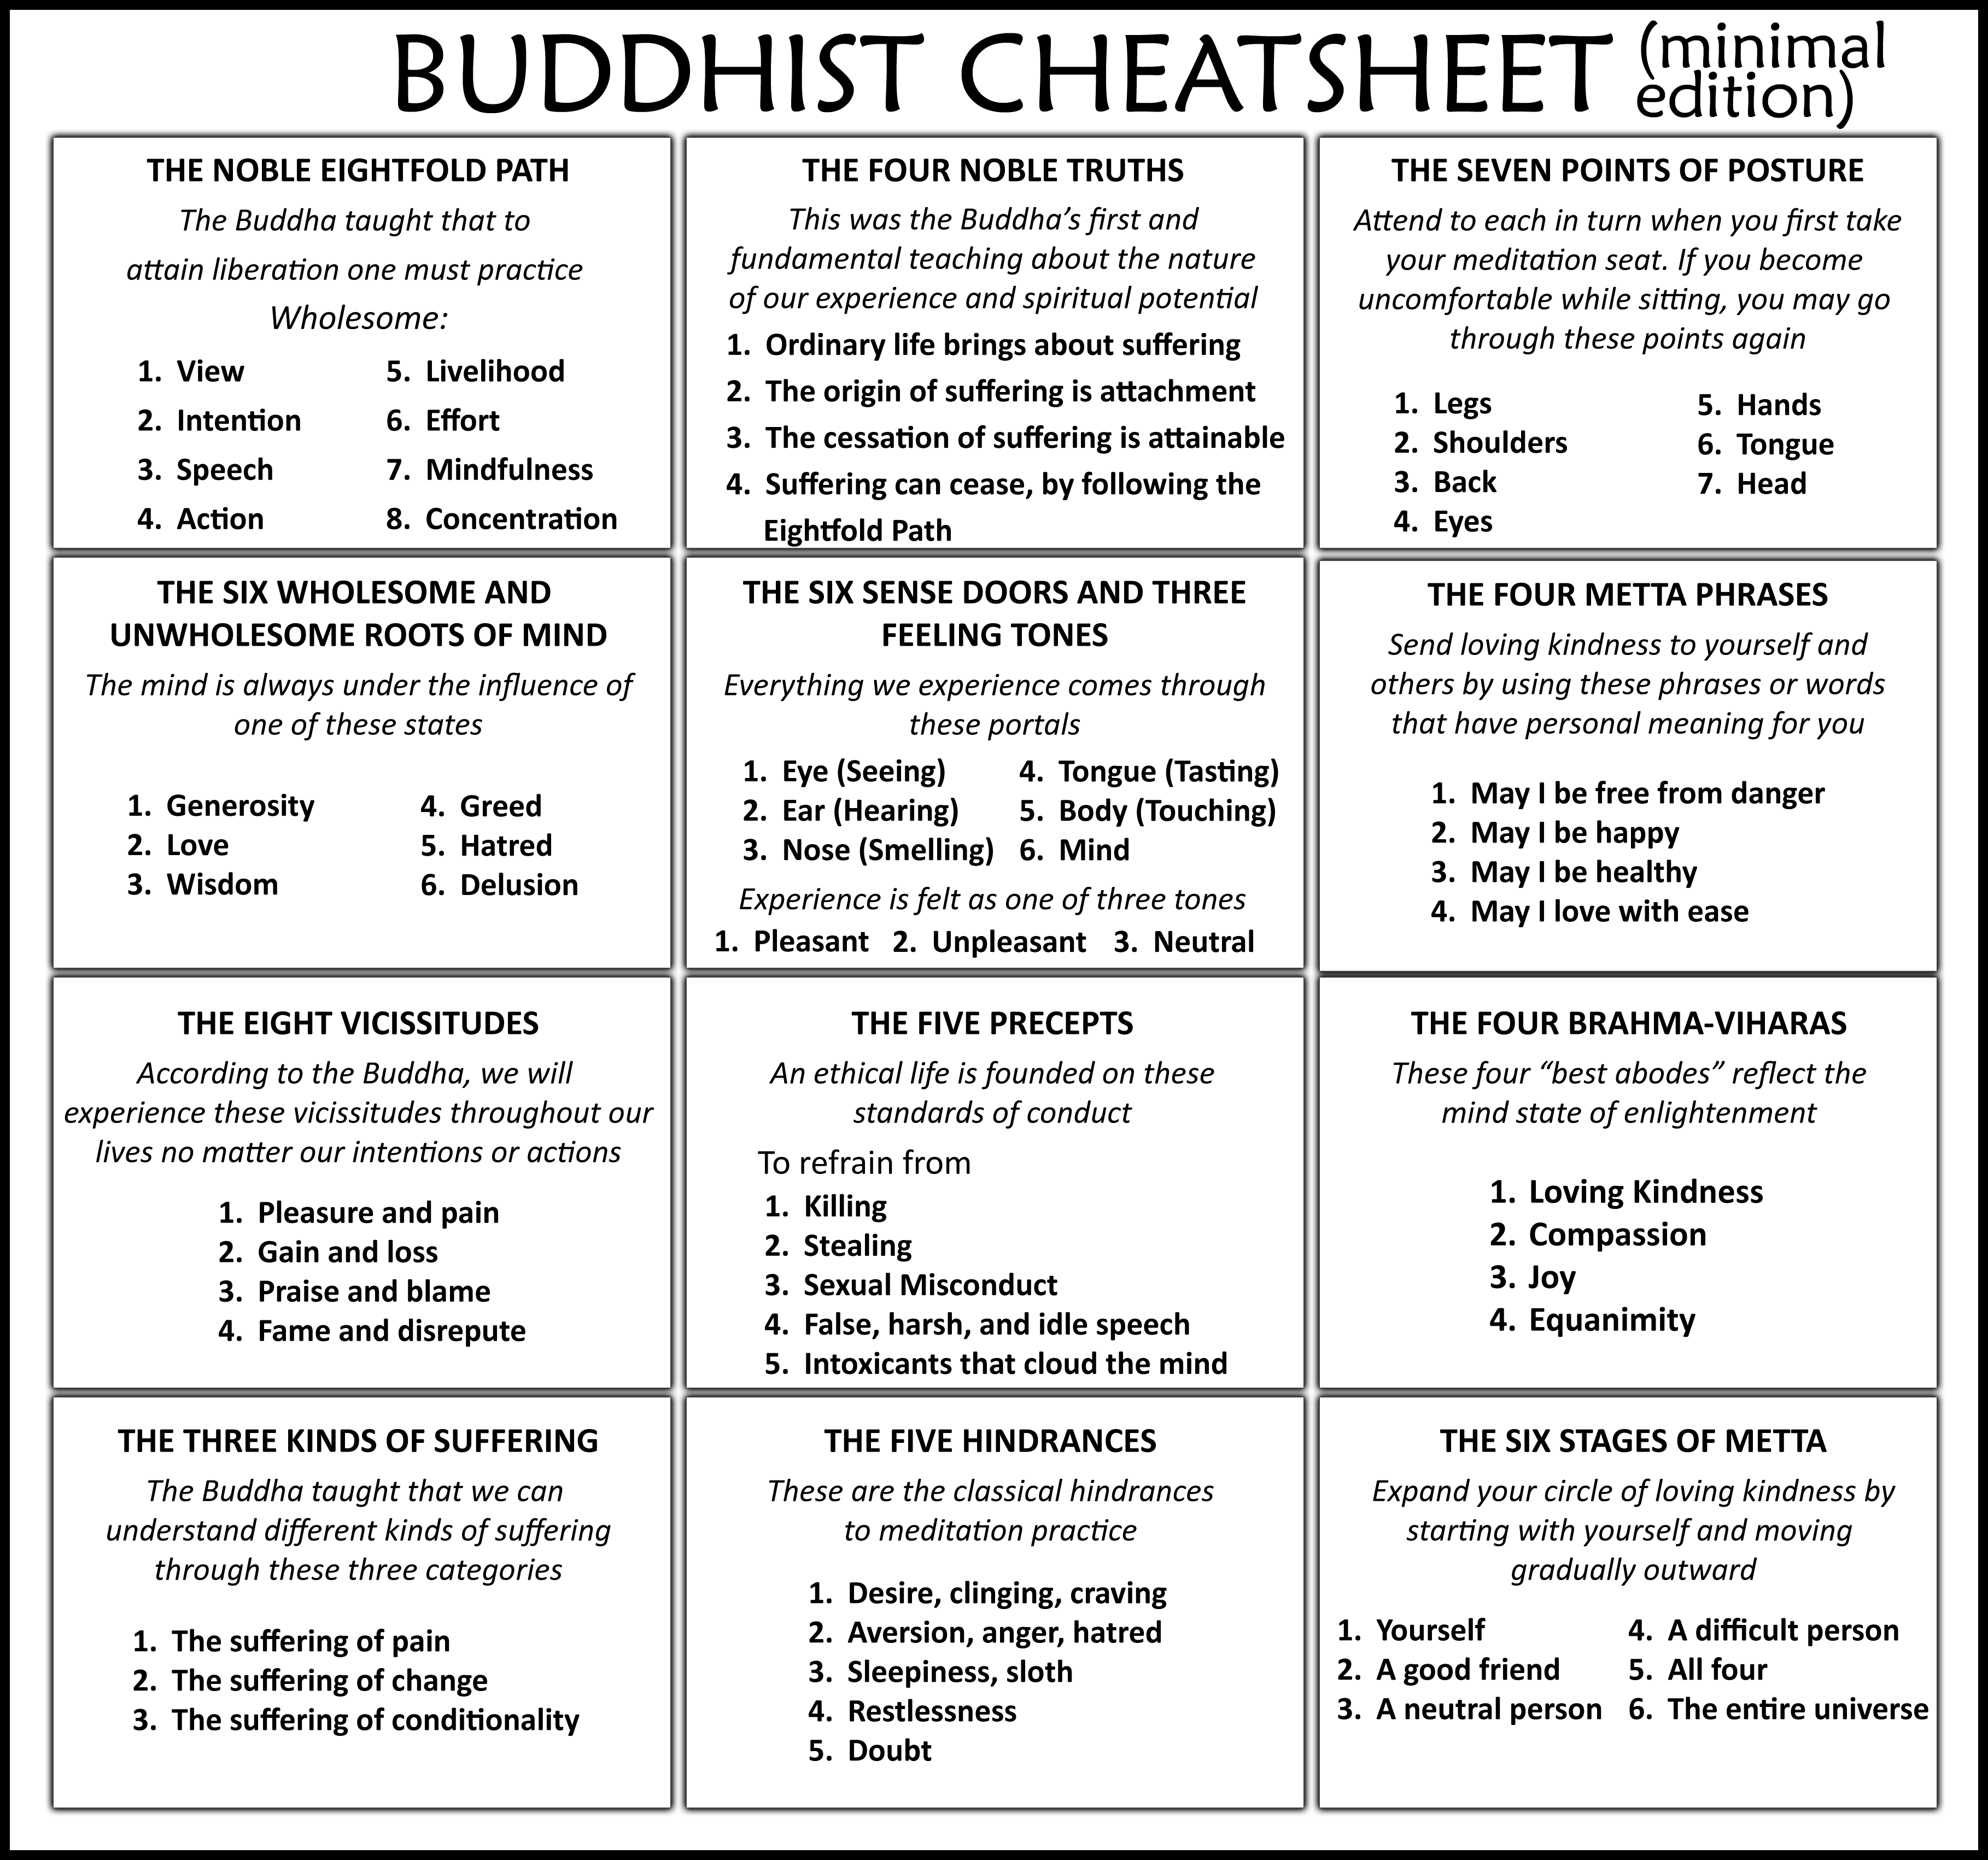 Buddhist Cheat Sheet 2.0 (minimal edition) | Buddhists, Health and ...